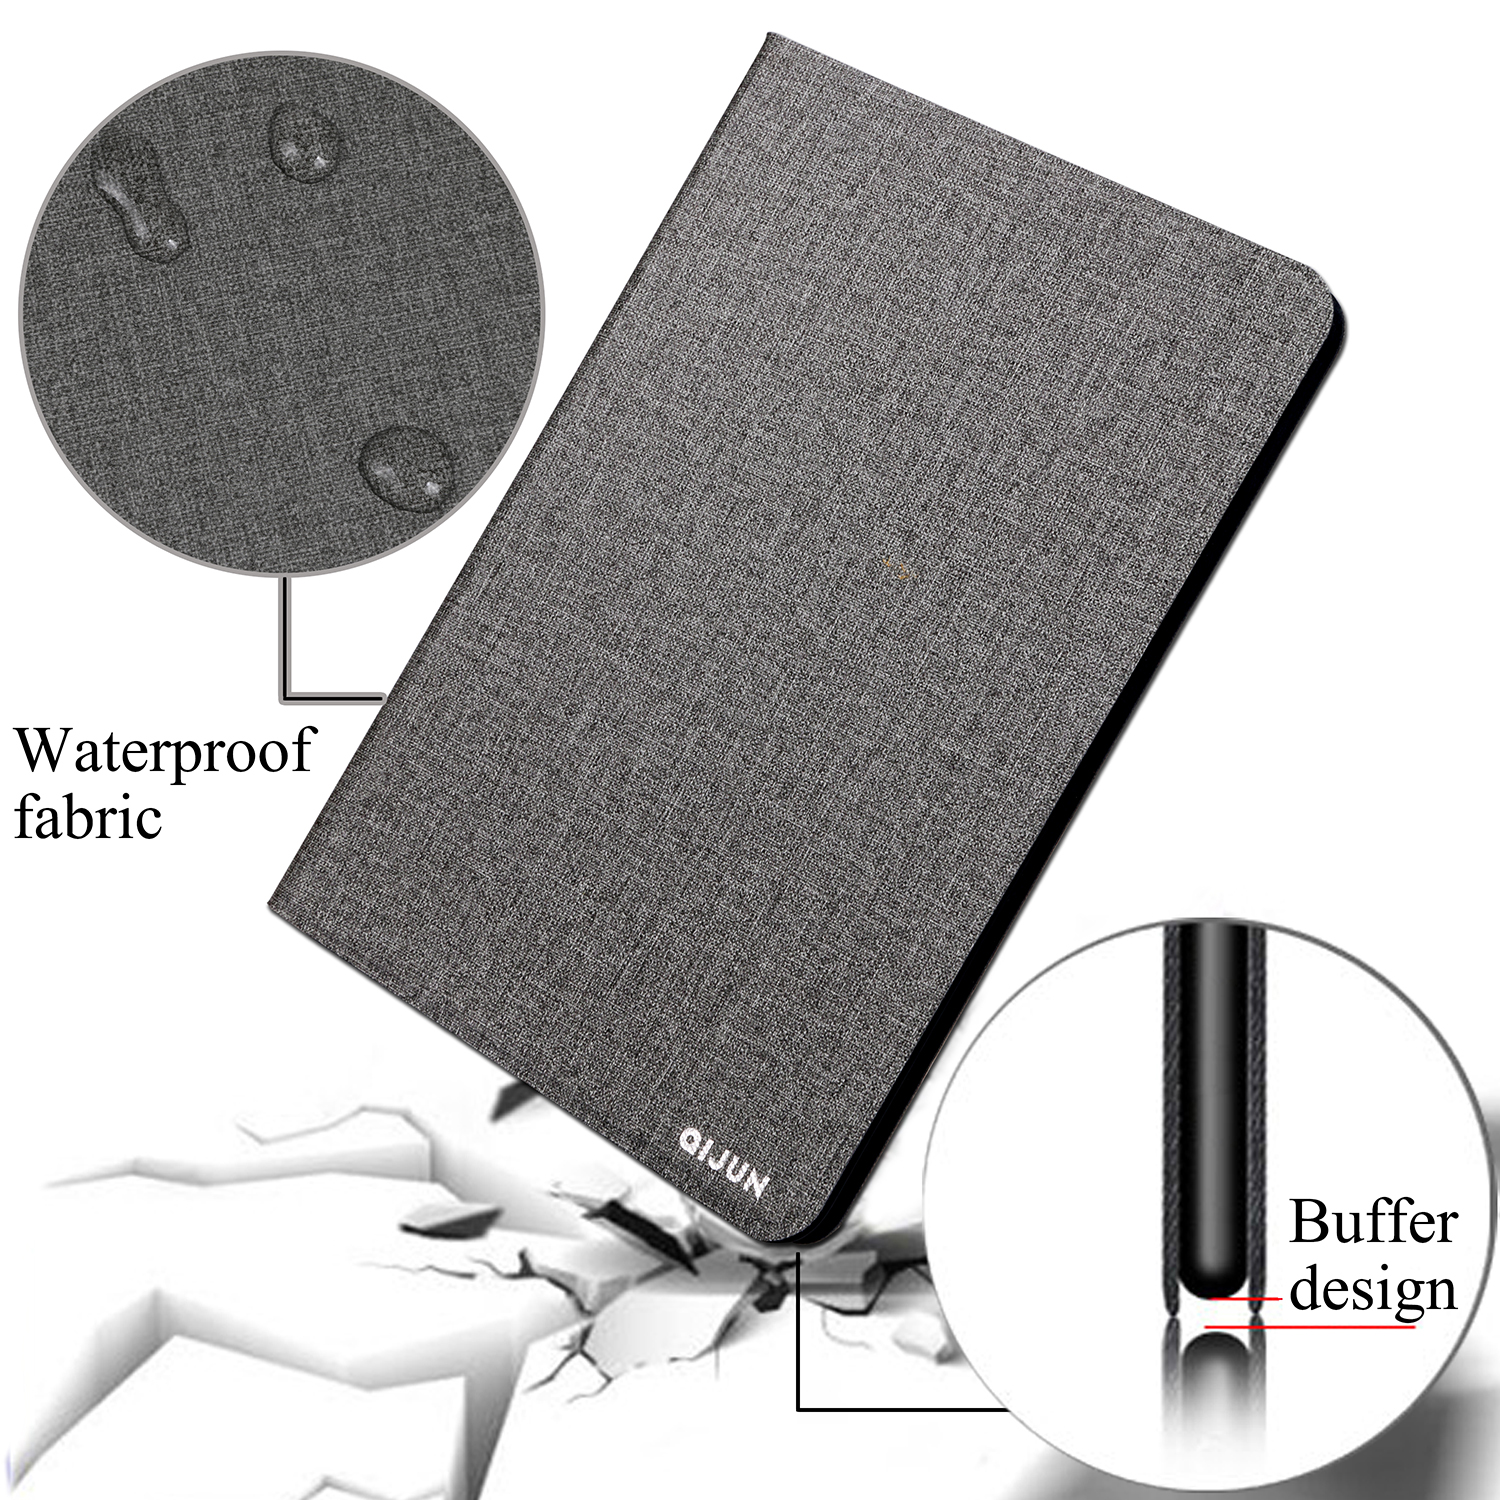 QIJUN tablet flip case for Samsung Galaxy Note 10 1 quot protective Stand Cover Silicone soft shell fundas capa for P600 P601 P605 in Tablets amp e Books Case from Computer amp Office